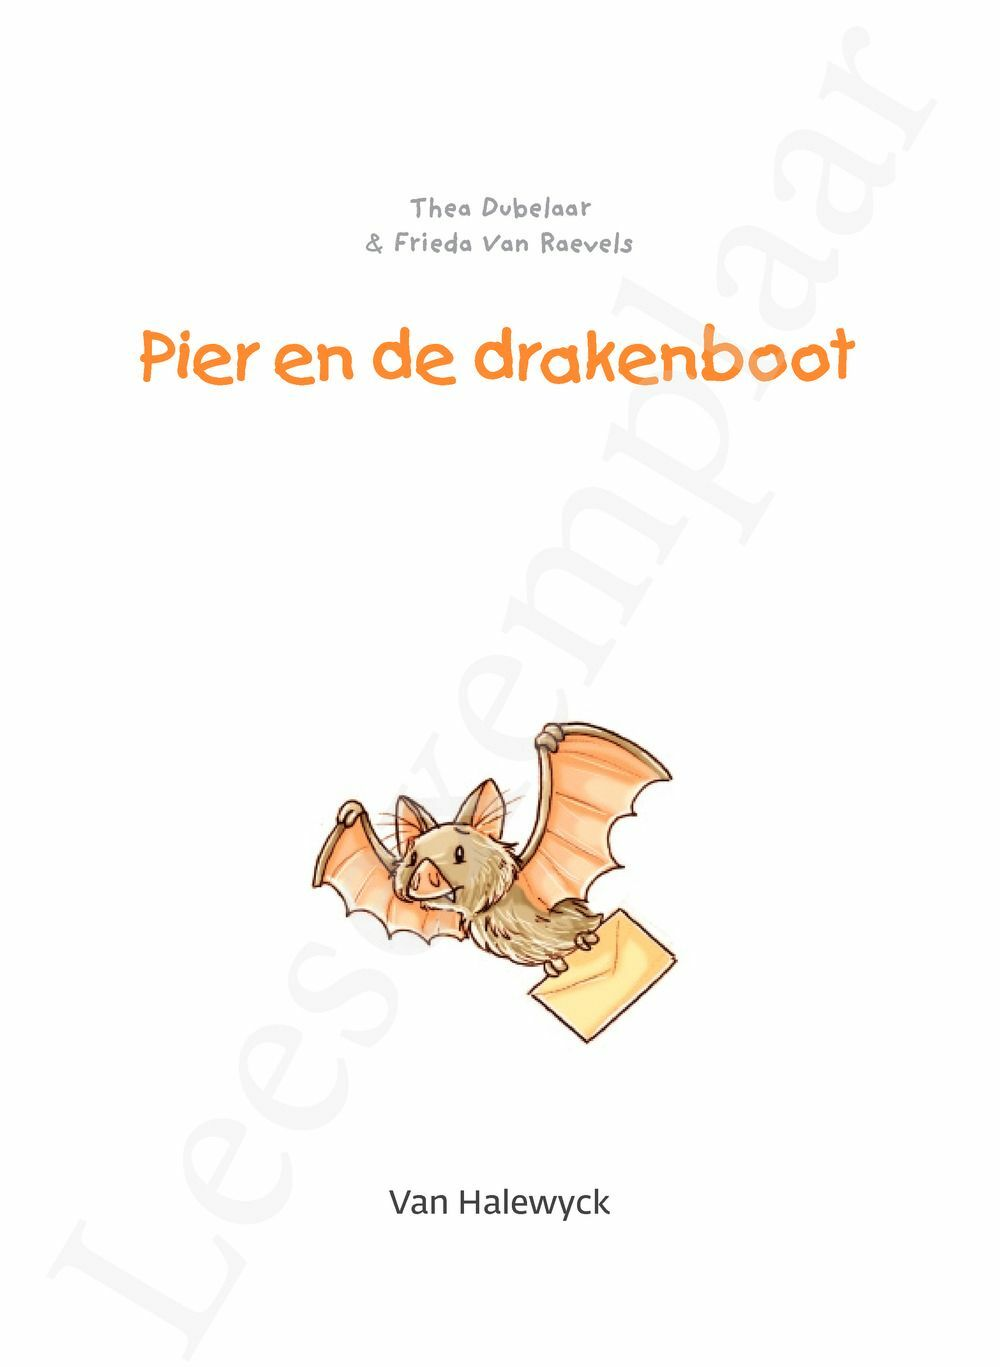 Preview: Pier en de drakenboot